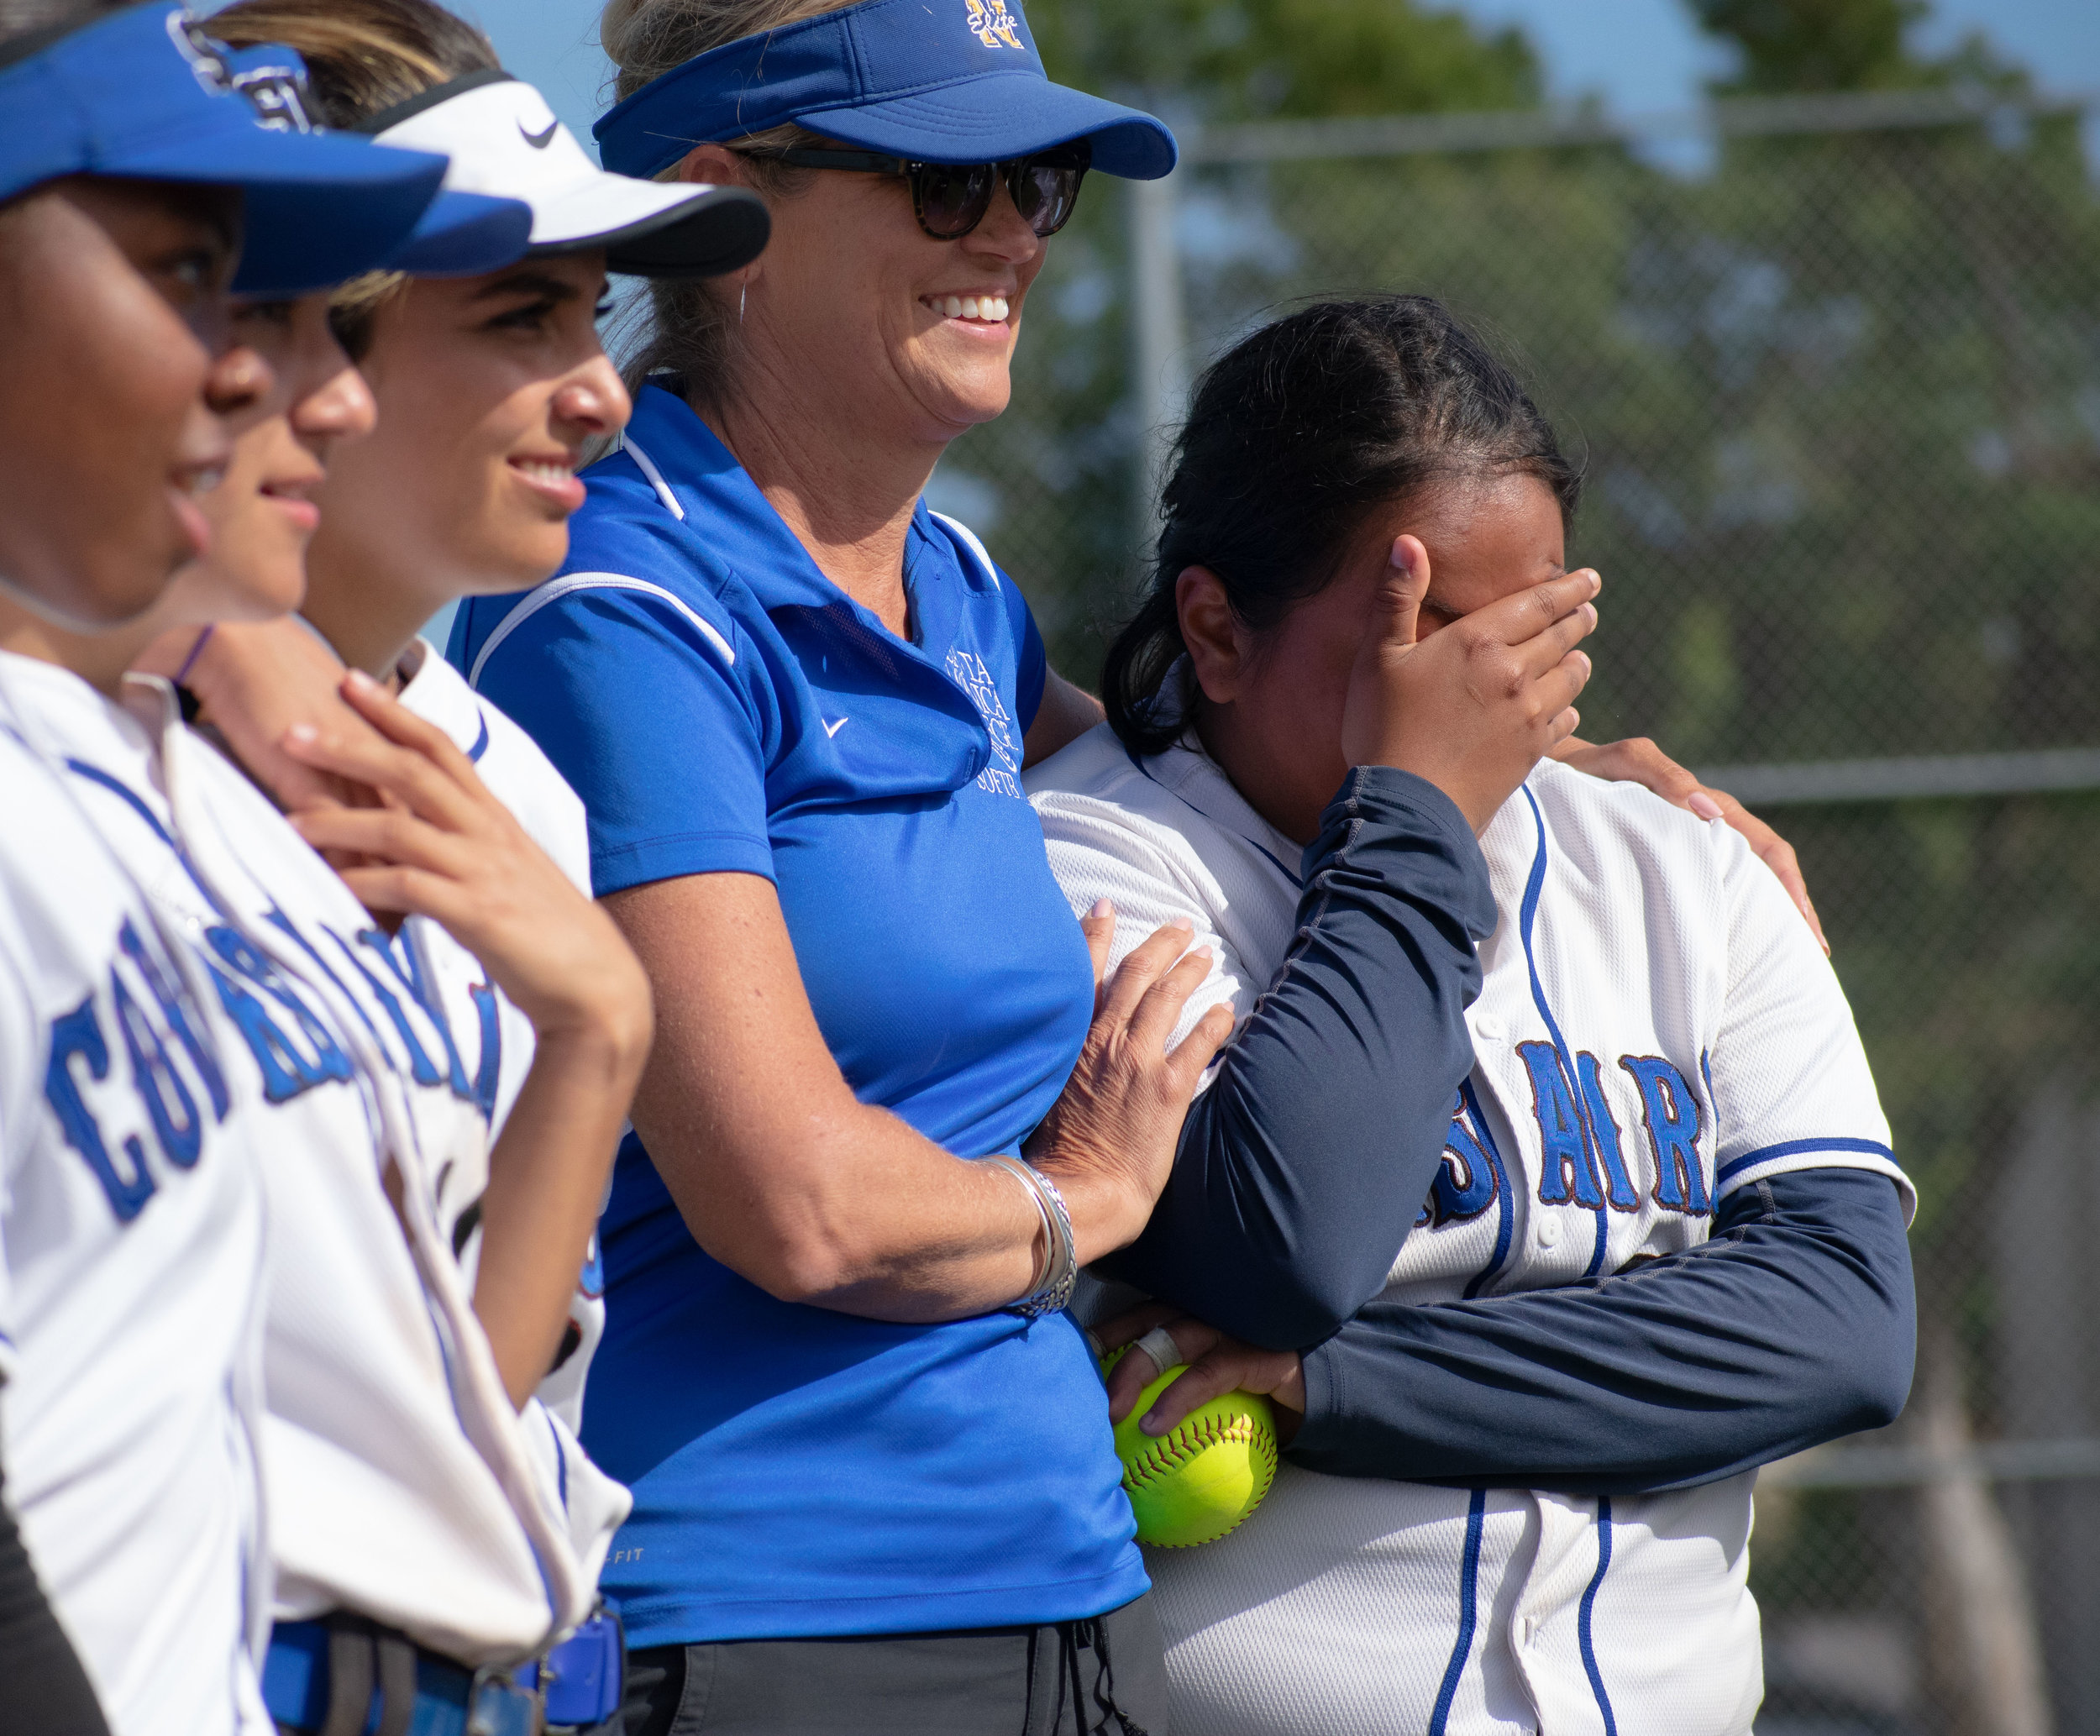 Santa Monica College Corsair Ashley Sasso (#12), right, a sophomore who played her last game gets emotional as the team discusses the season after the final game of the season against the Santa Barbara Vaqueros on Friday, April 20, 2018 at the John Adams Middle School Field in Santa Monica, California. The game was a 7-1 loss for the Corsairs, ending the season with an 8-21 record. (Ethan Lauren/Corsair Photo)